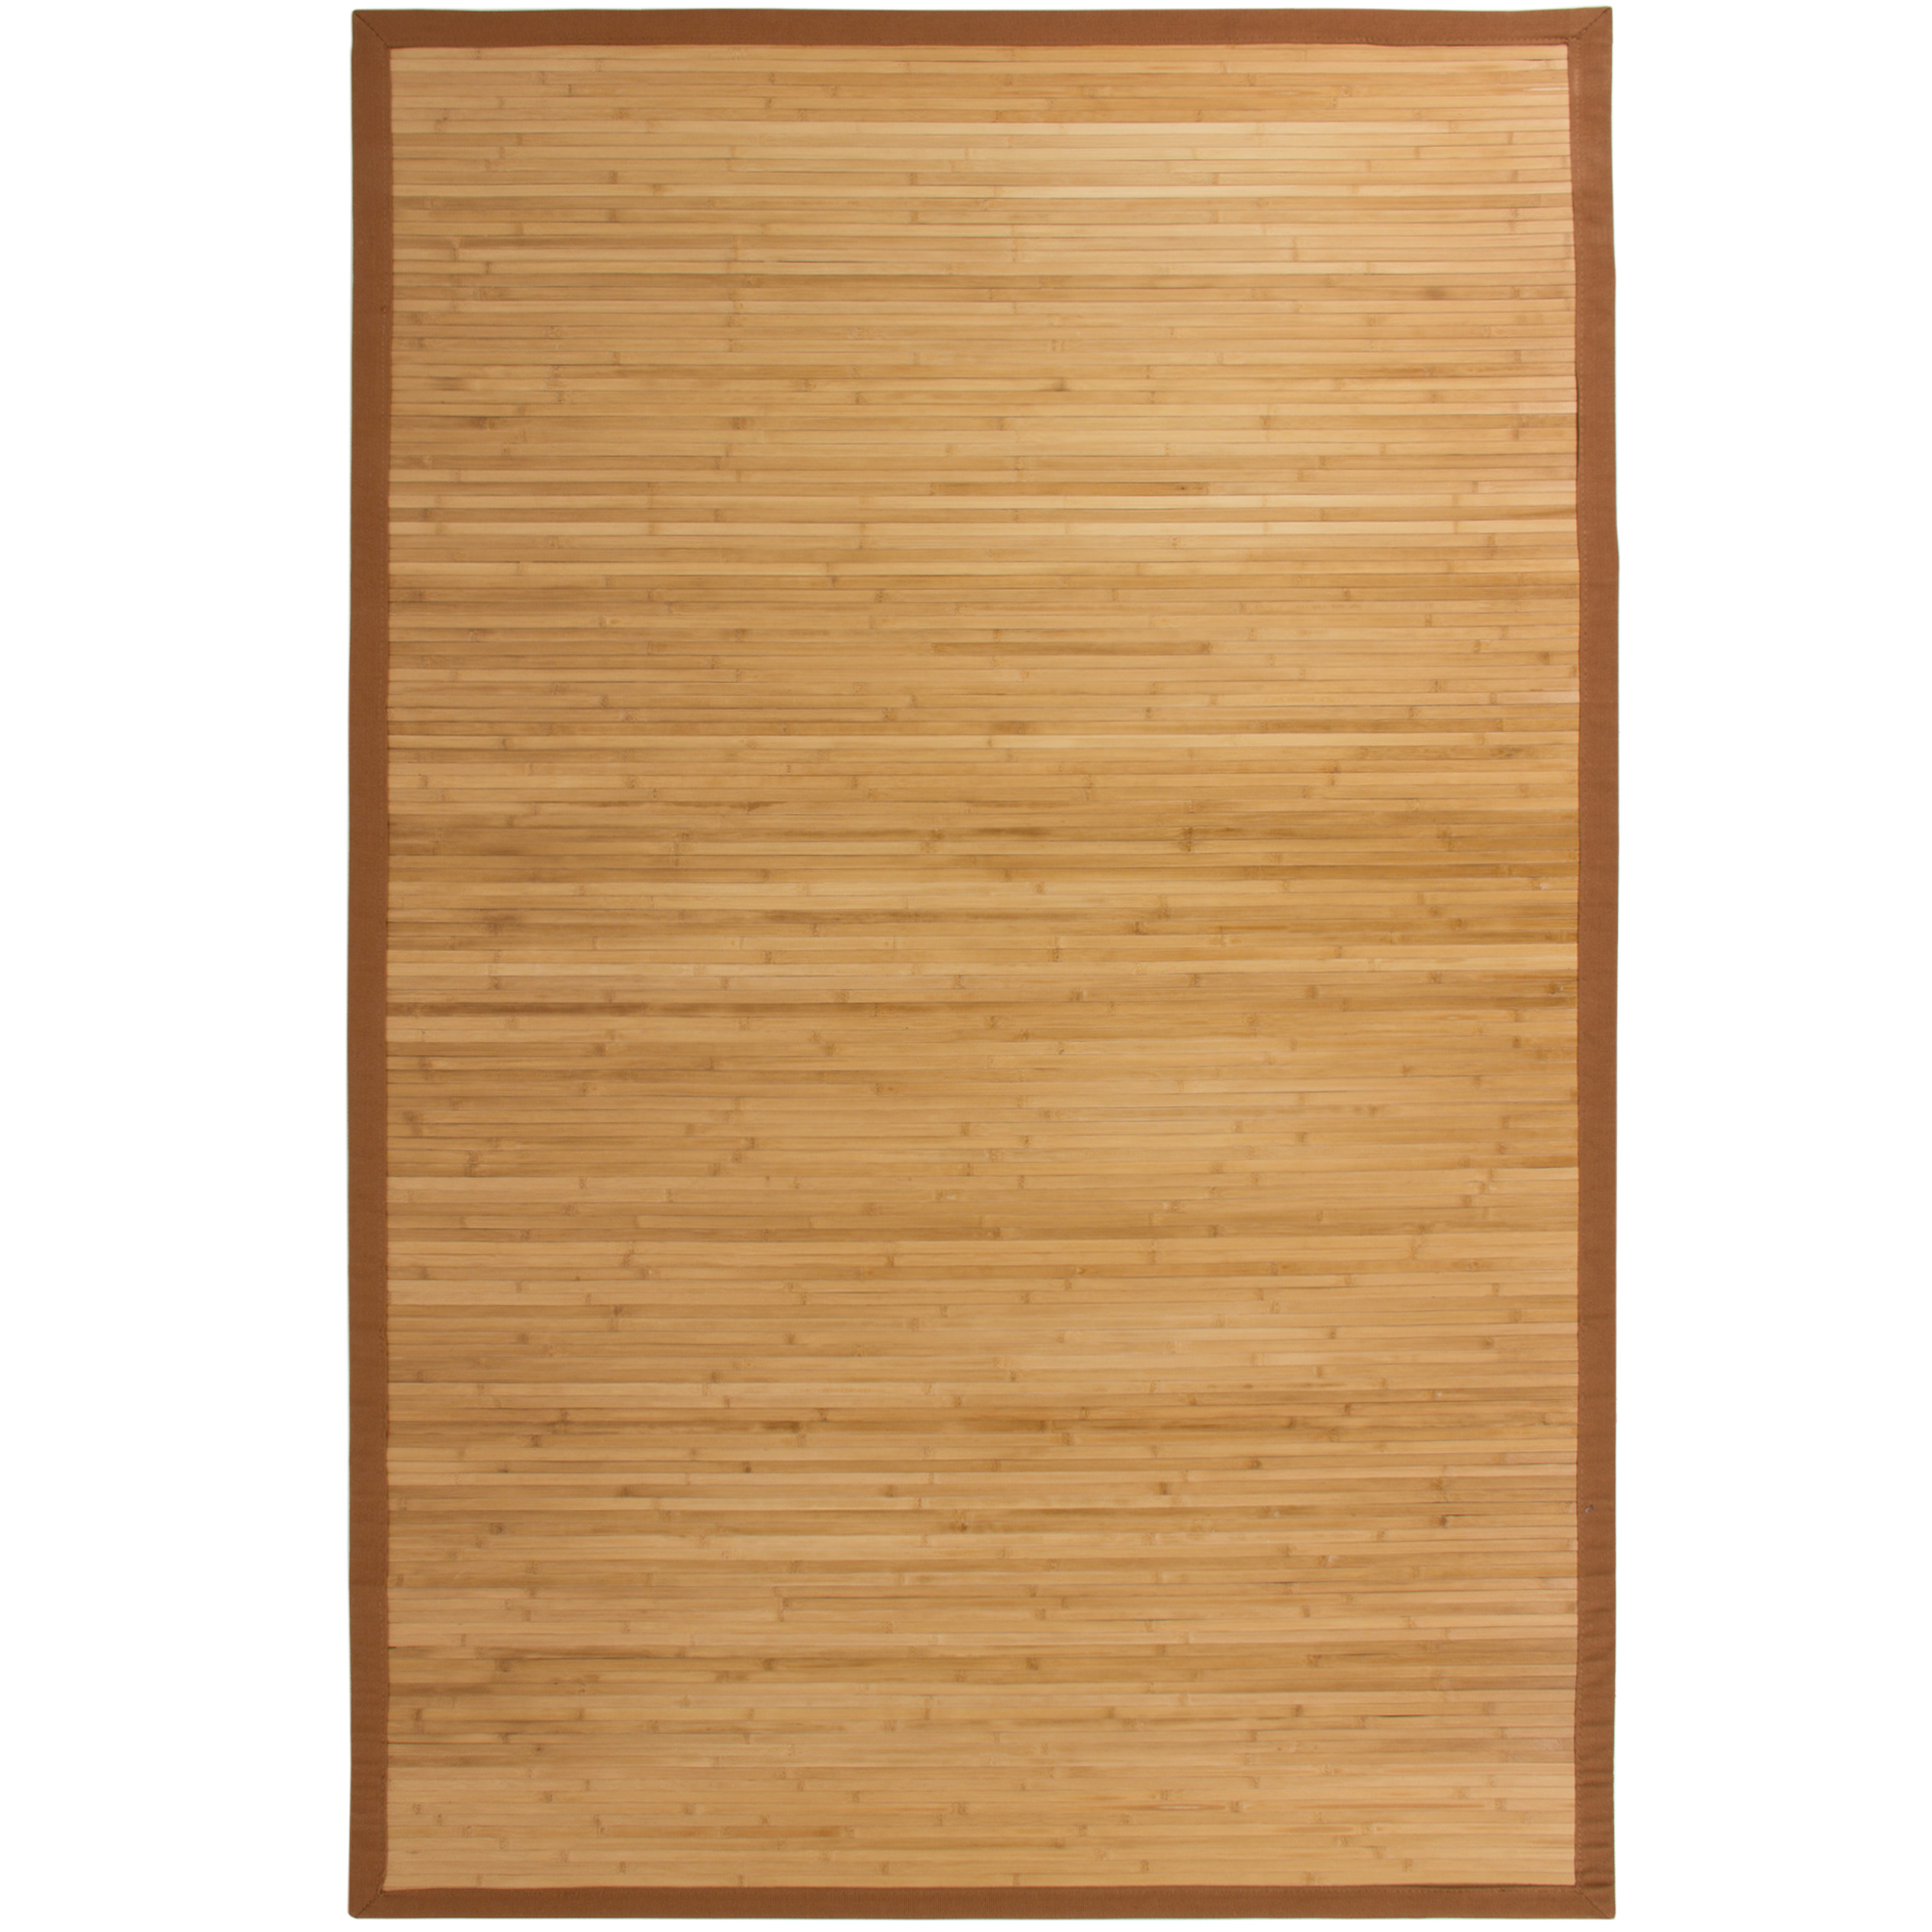 Best Choice Products Bamboo Area Rug Carpet Indoor 5' X 8'  100% Natural Bamboo Wood  New